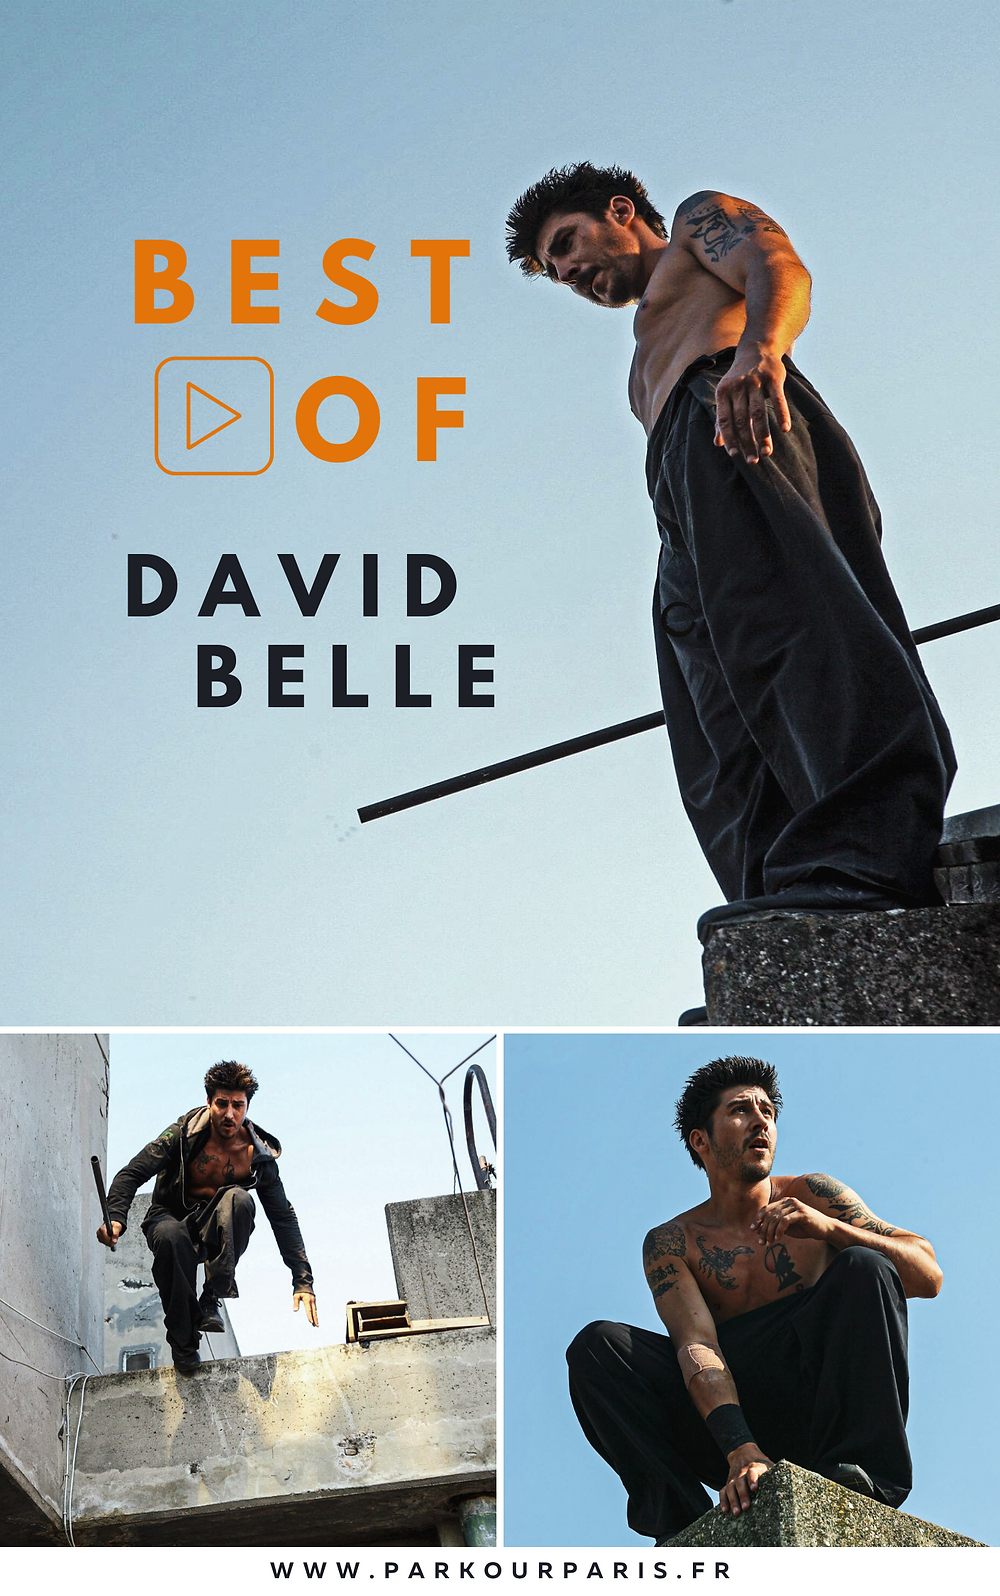 Best of david belle